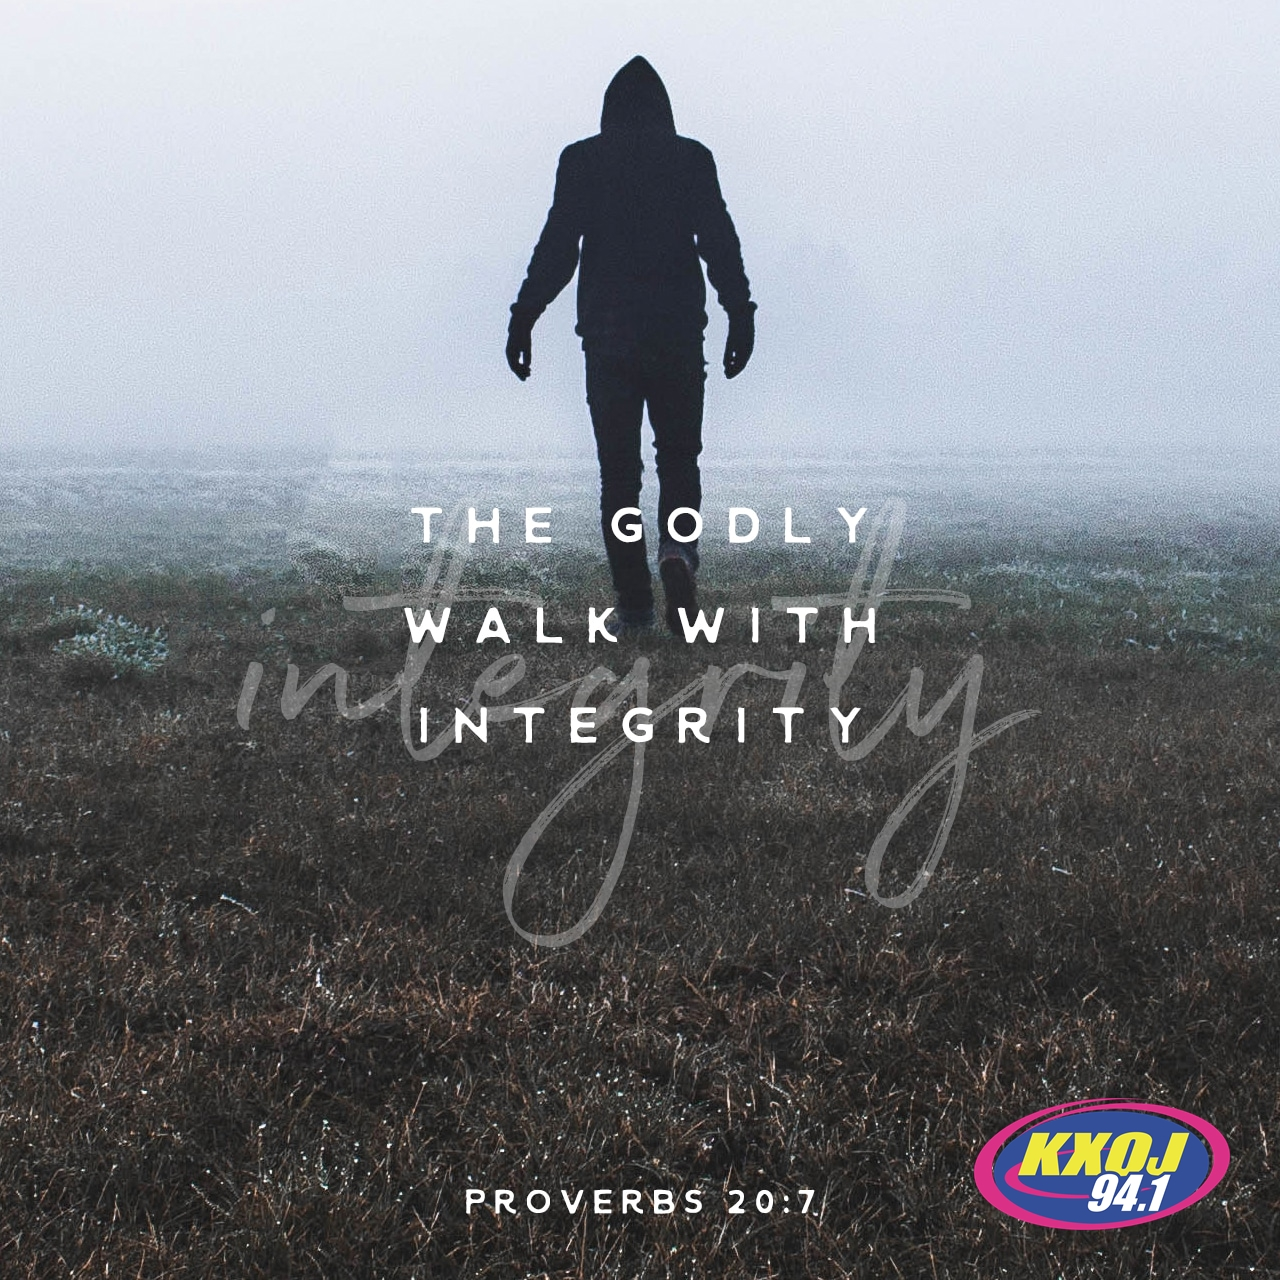 July 9th - Proverbs 20:7